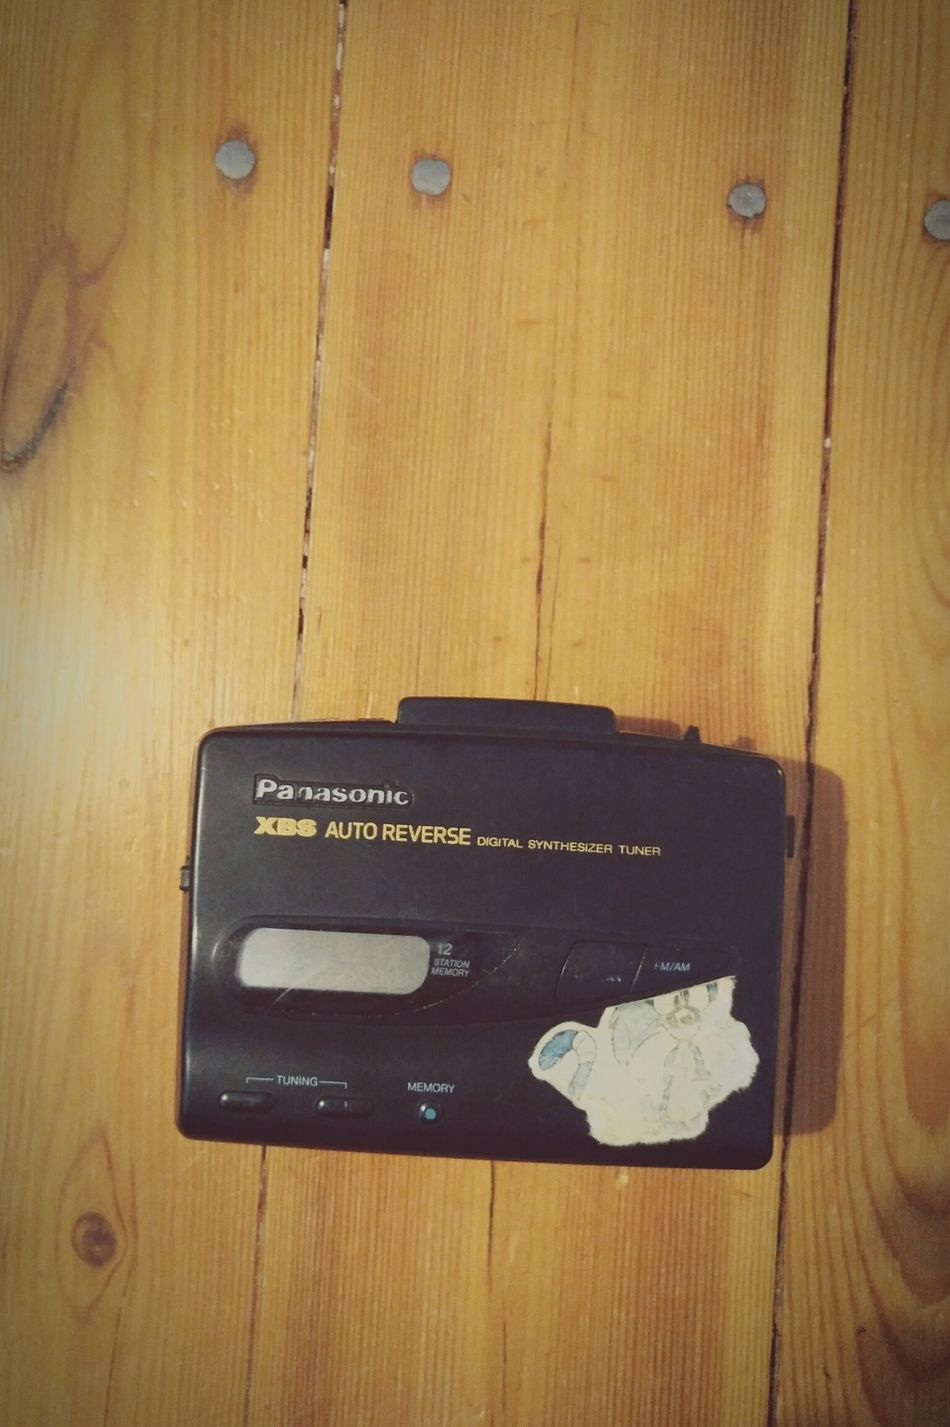 AutoReverse Fundstückdestages Walkman Panasonic  Forward Reverse Oldschool 80s Wohnglück Close-up Music Love Is In The Air What I Value Videokilledtheradiostar Lieblingsteil Favorite Thing Music Brings Us Together Favorite Things  Tape Wood Wooden Floor Timber Piling Fundstück Find Long Goodbye